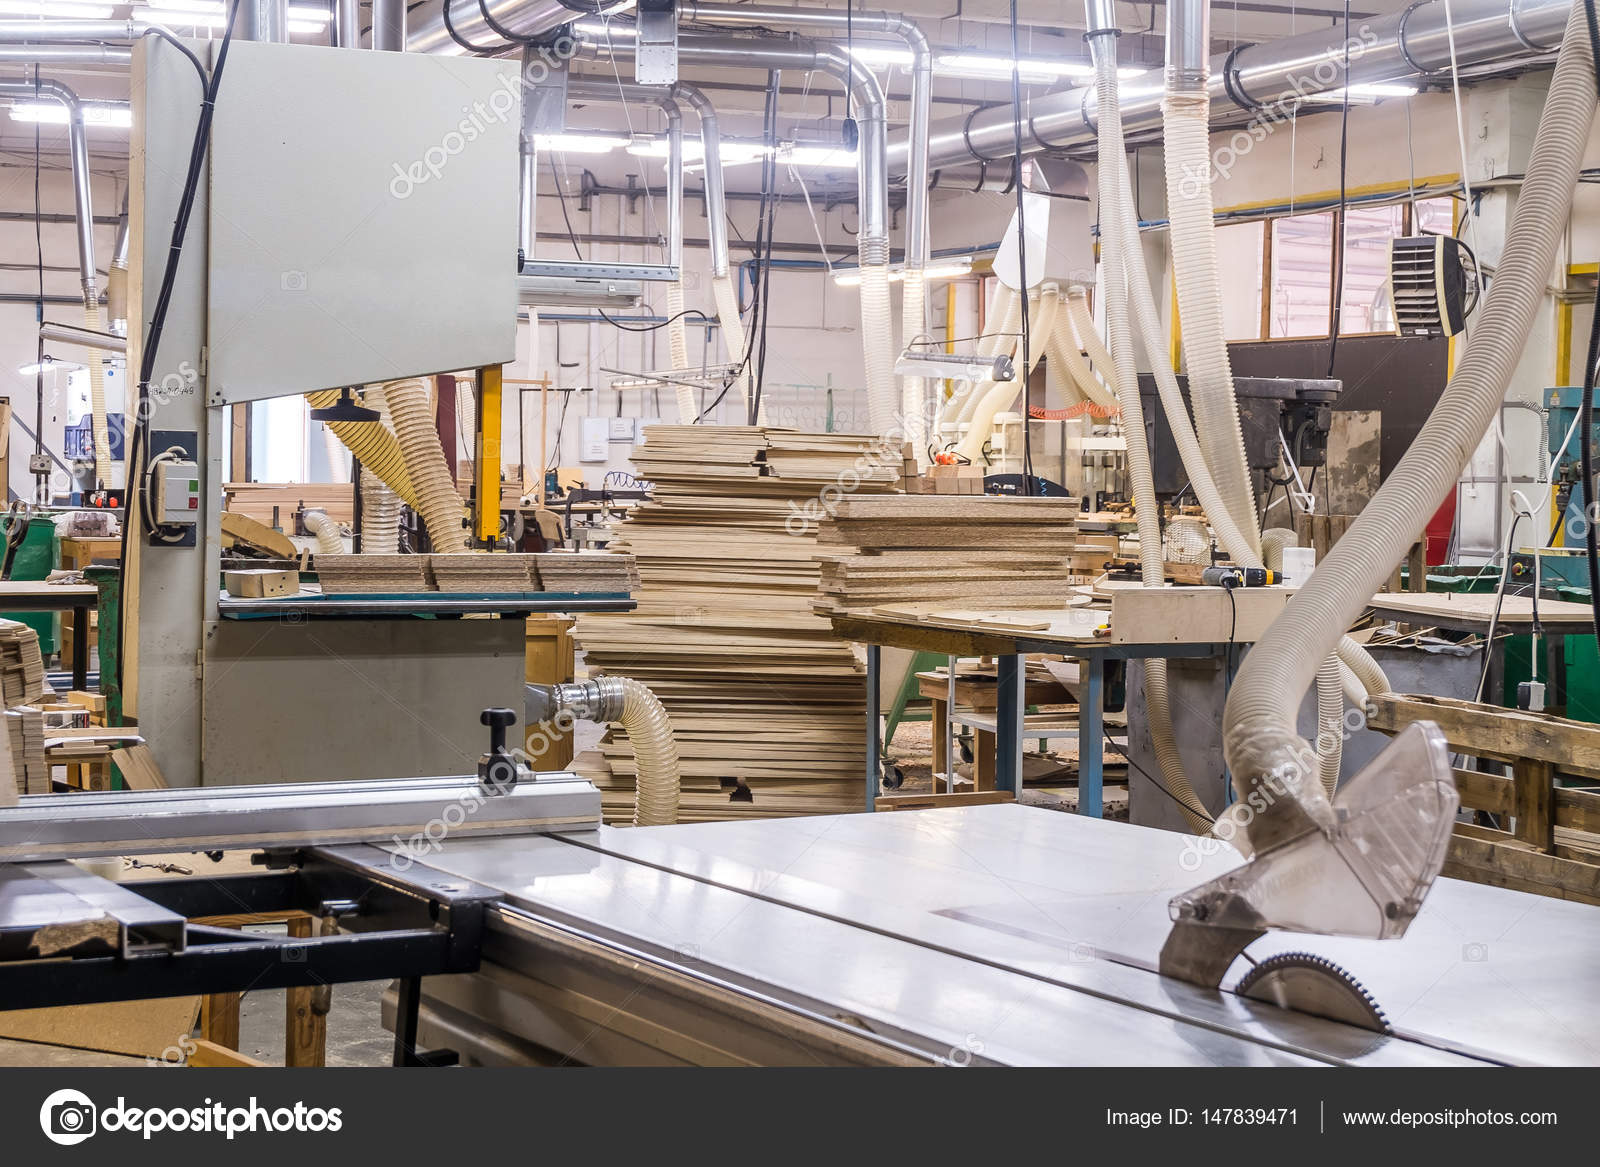 Genial Workshop For The Production Of Wooden Furniture In The Factory U2014 Stock Photo